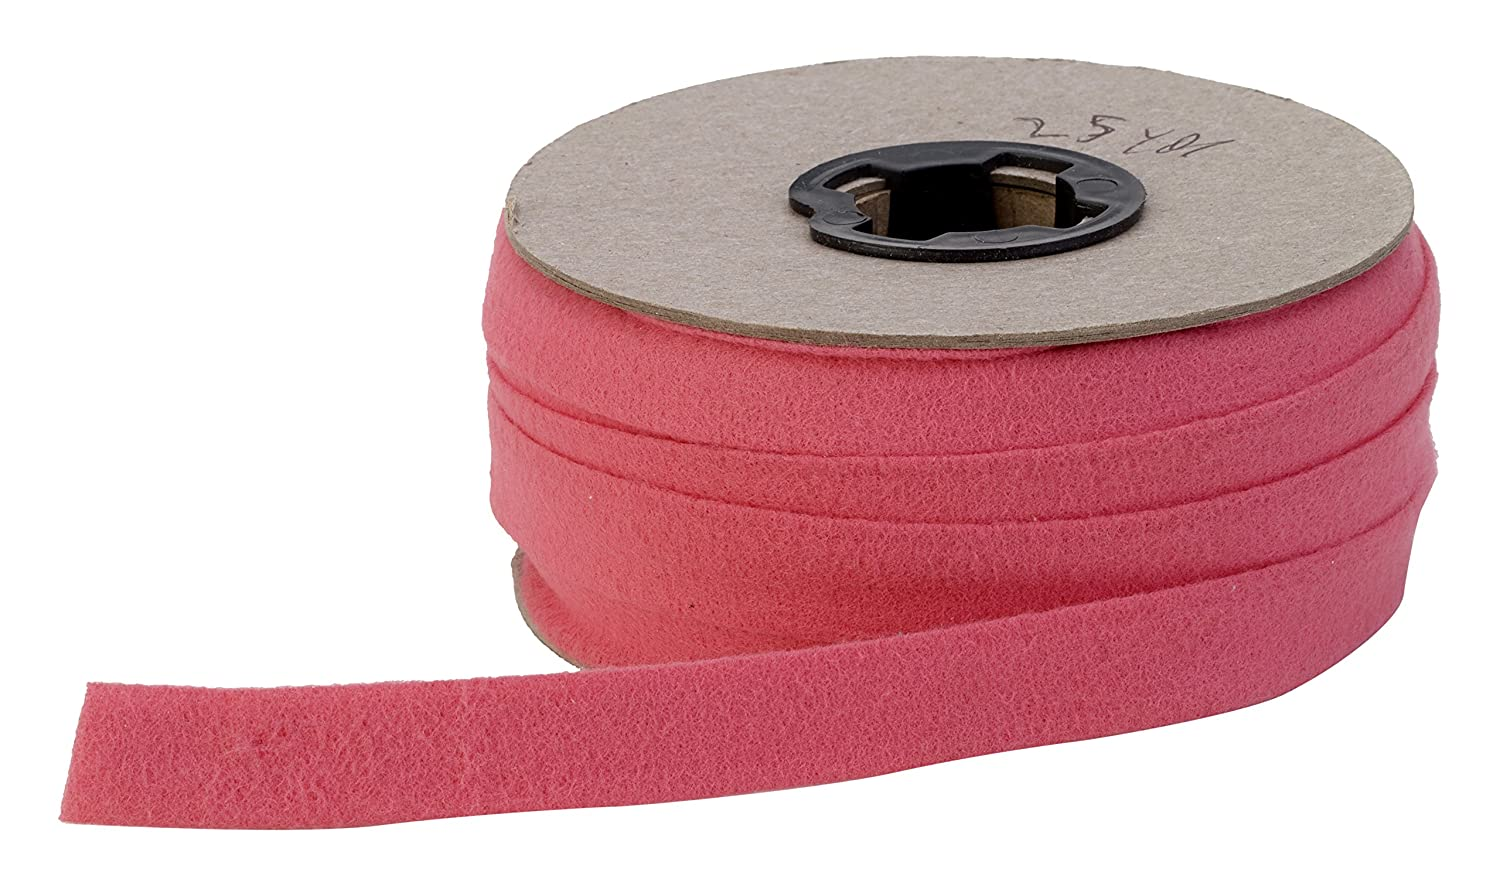 Pearl 1 Centerfold Quilt Binding, Brushed, 25 yd, Cherry Pearl Trim 9800-486-25